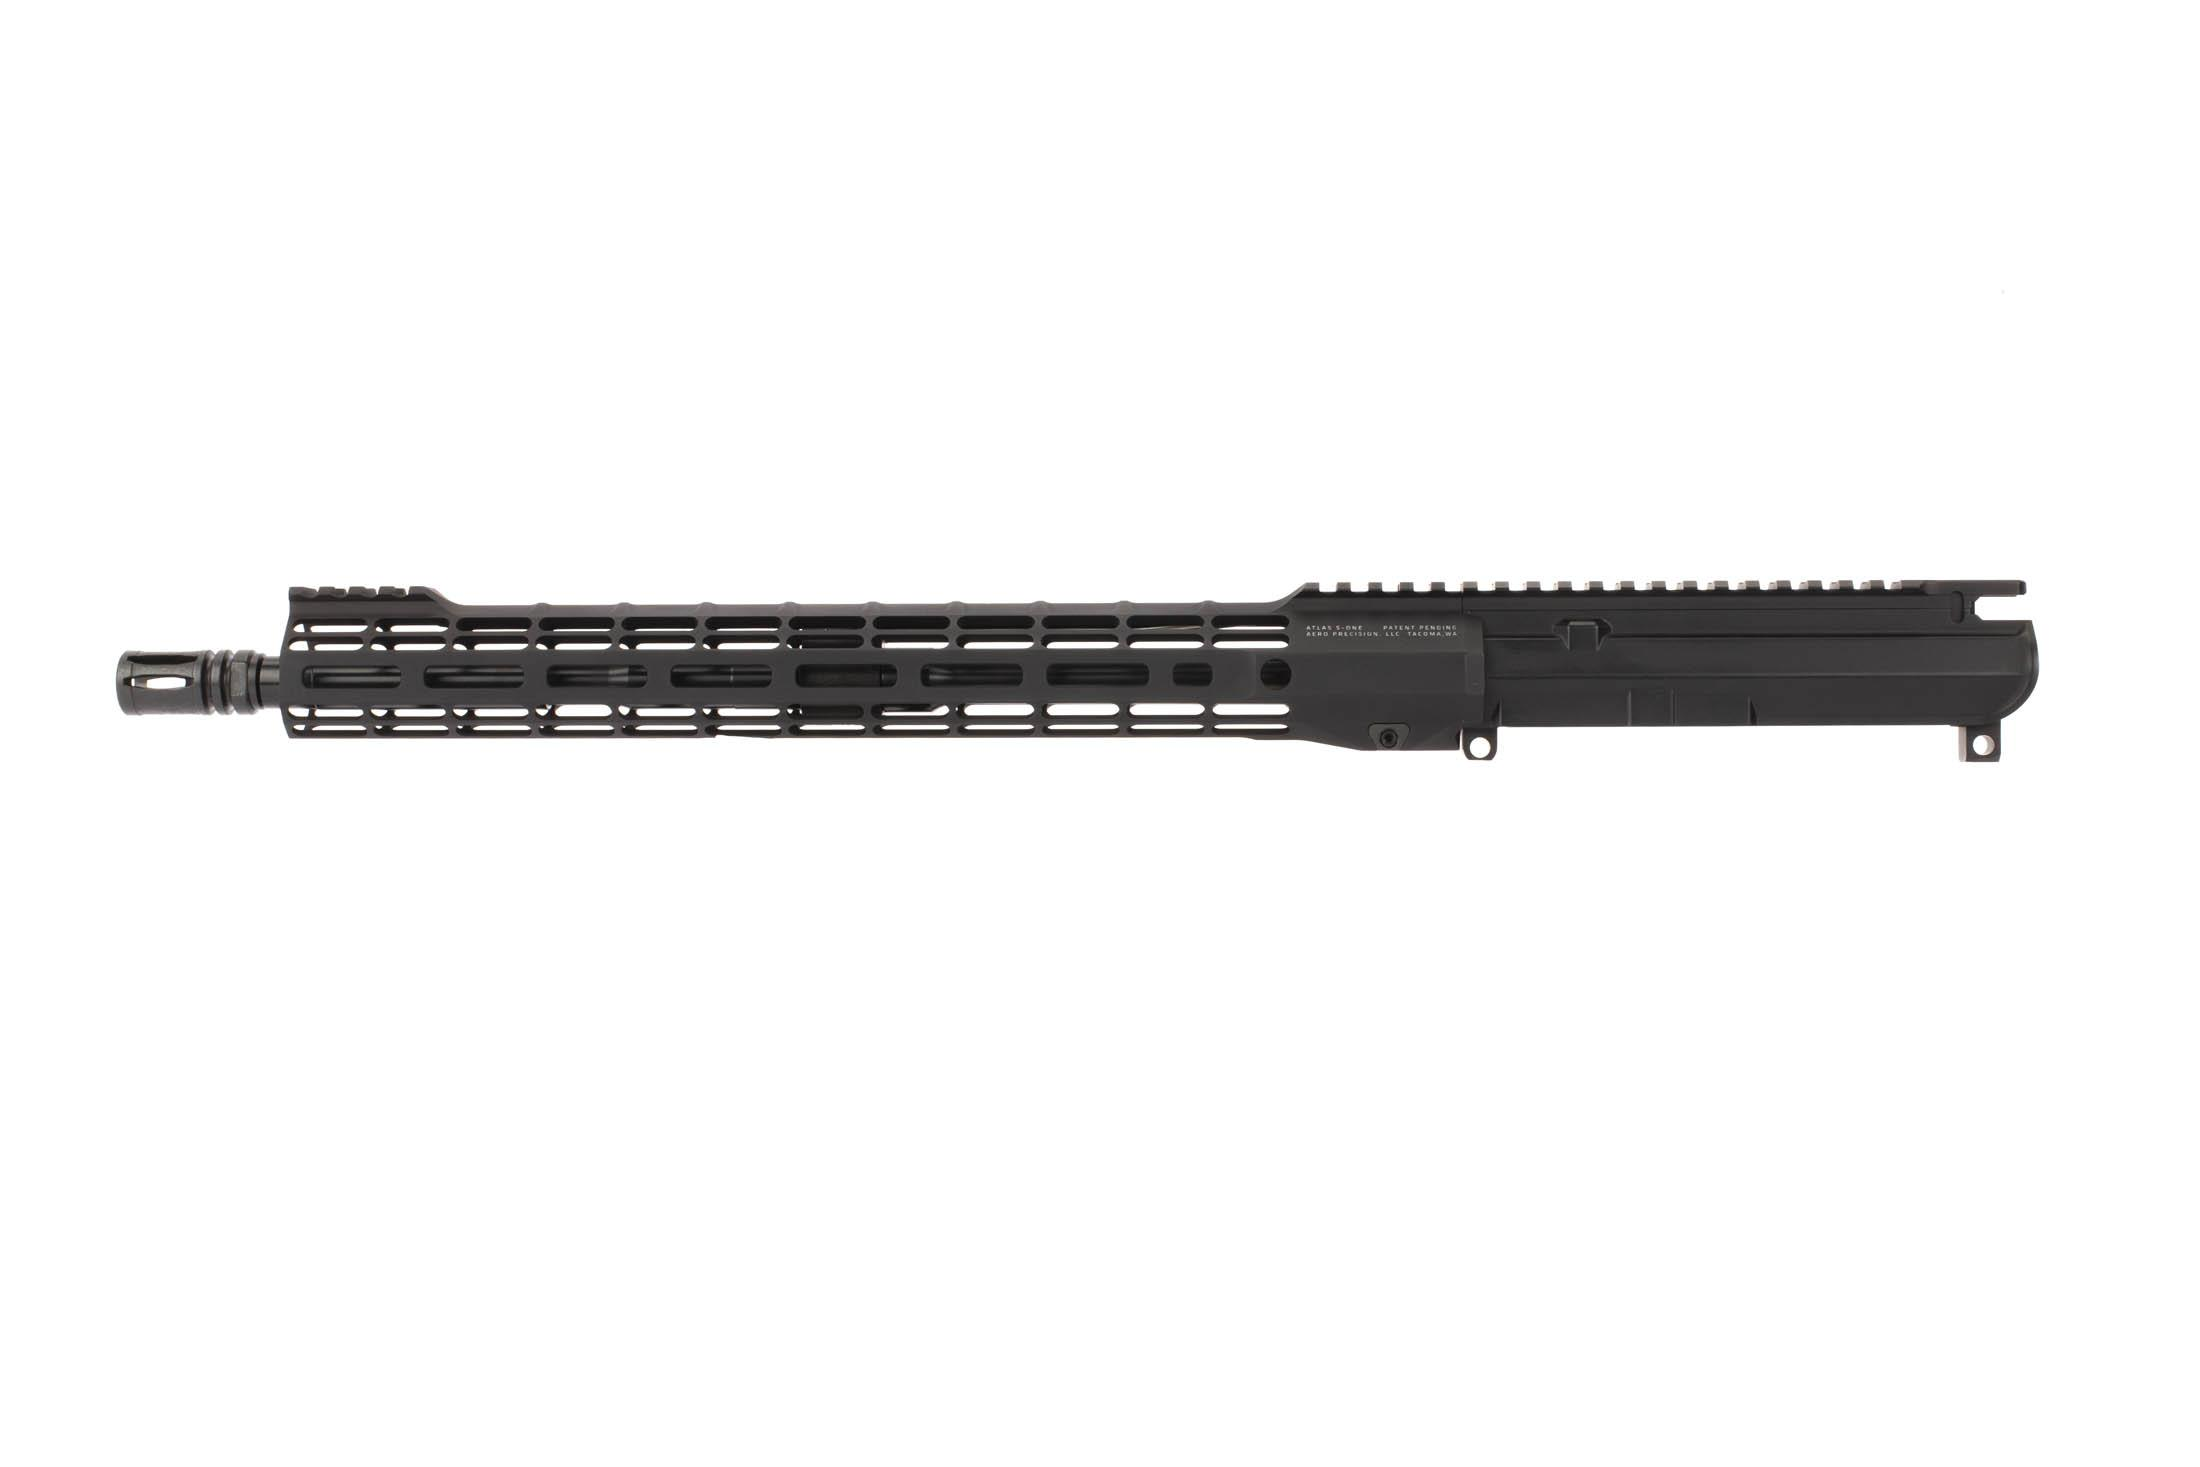 Aero Precision 16in 5.56 NATO Enhanced M4E1 AR-15 barreled uppper with 15in ATLAS S-ONE M-LOK rail